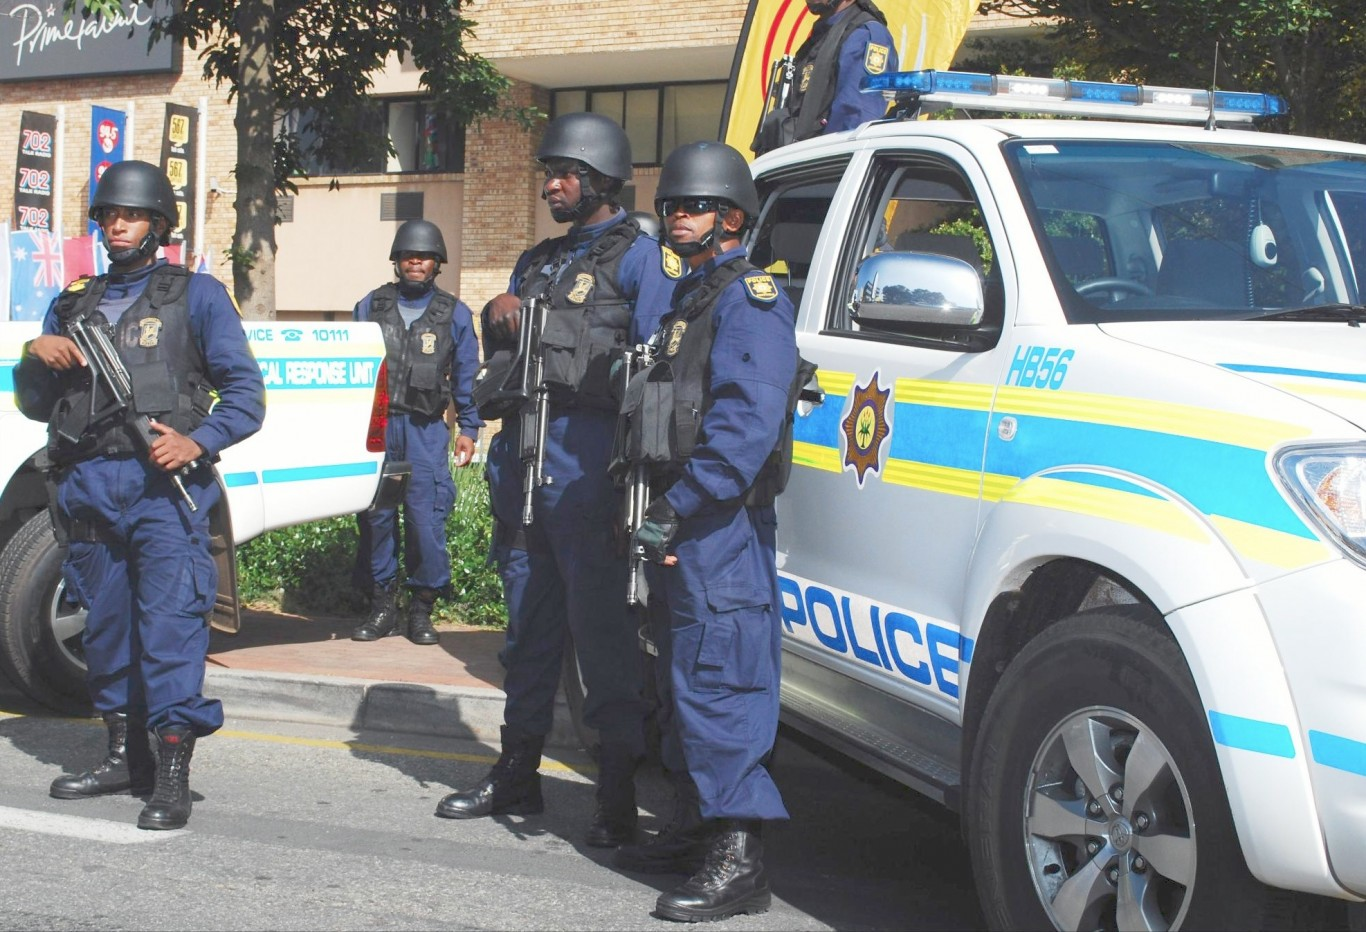 35 unlicensed firearms recovered in a one-week operation